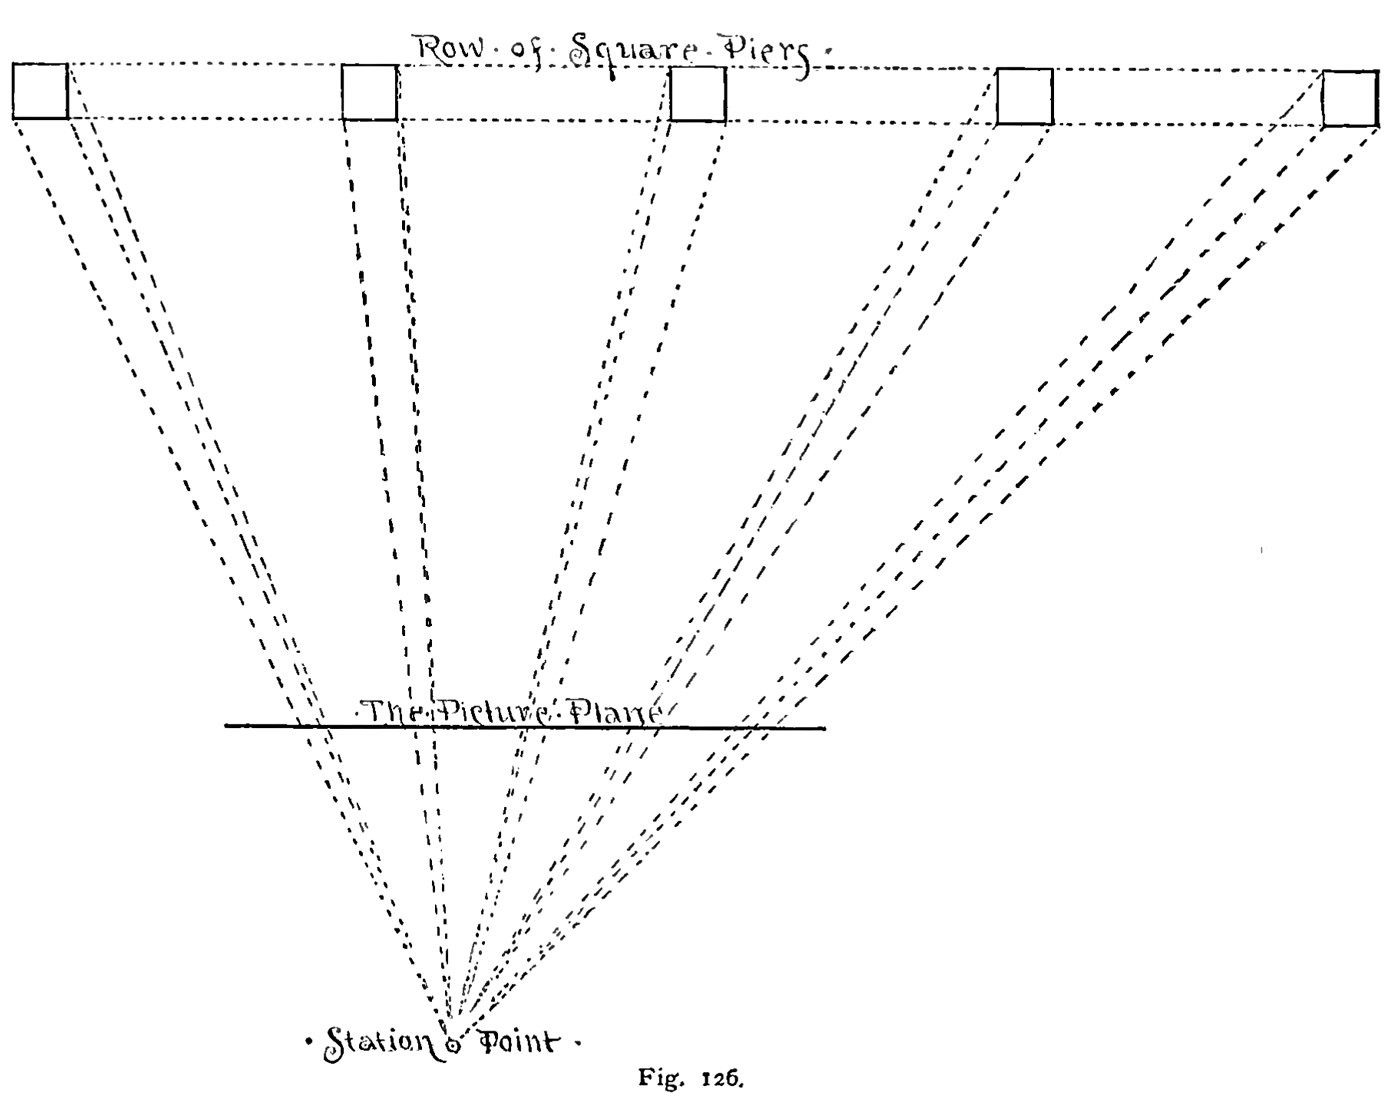 relation existing between a row of arches with square piers, the eye of an observer, and a picture-plane fixed